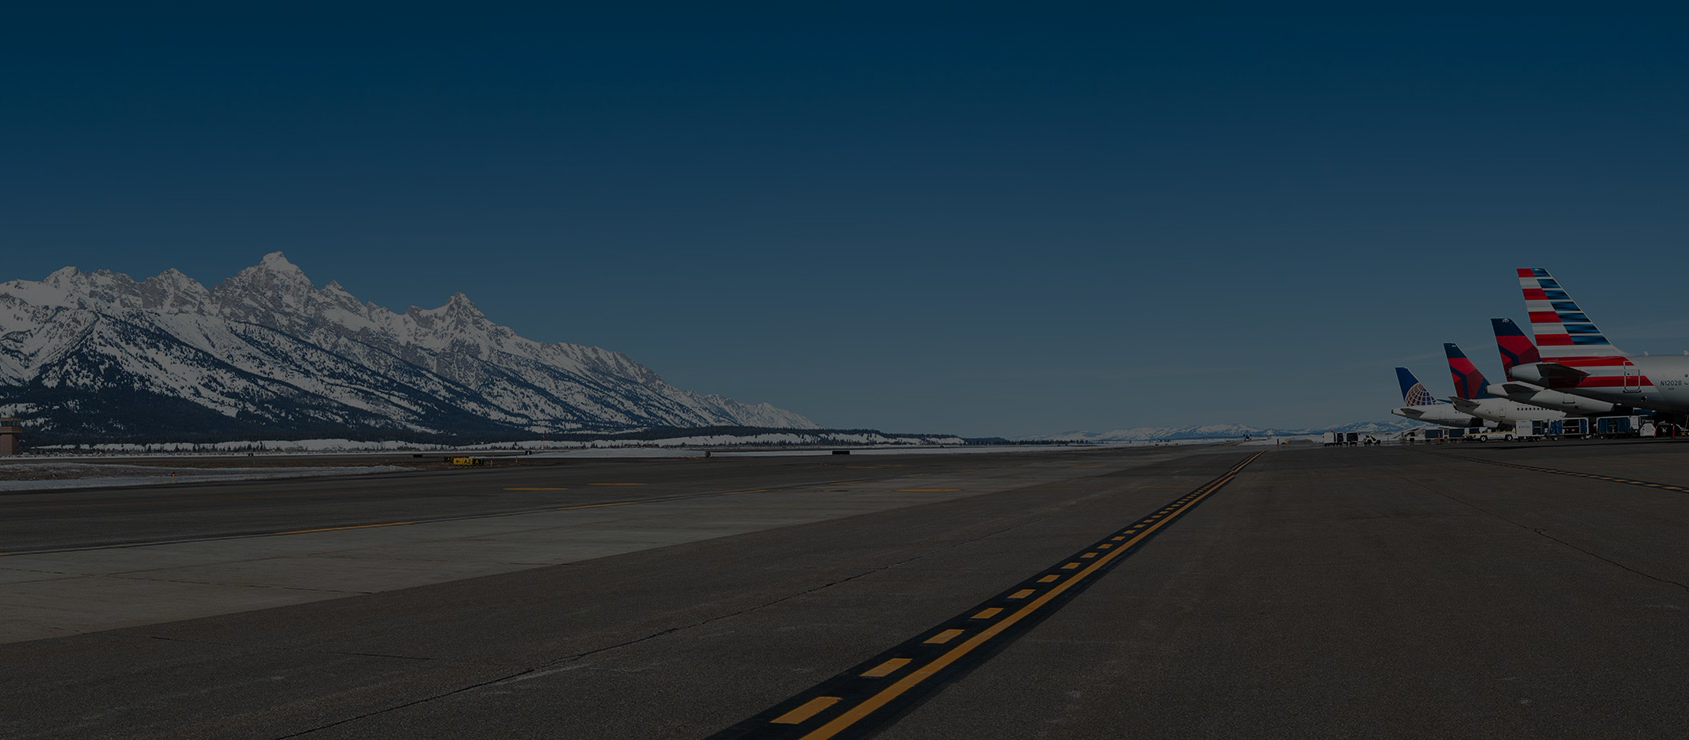 BY AIR - The Jackson Hole Airport (JAC) is located conveniently at the base of the Teton Mountain Range. The airport is a picturesque half-hour drive to Teton Village. There are plenty of rental companies and taxi options.This is a small airport so it's best to plan ahead of time.